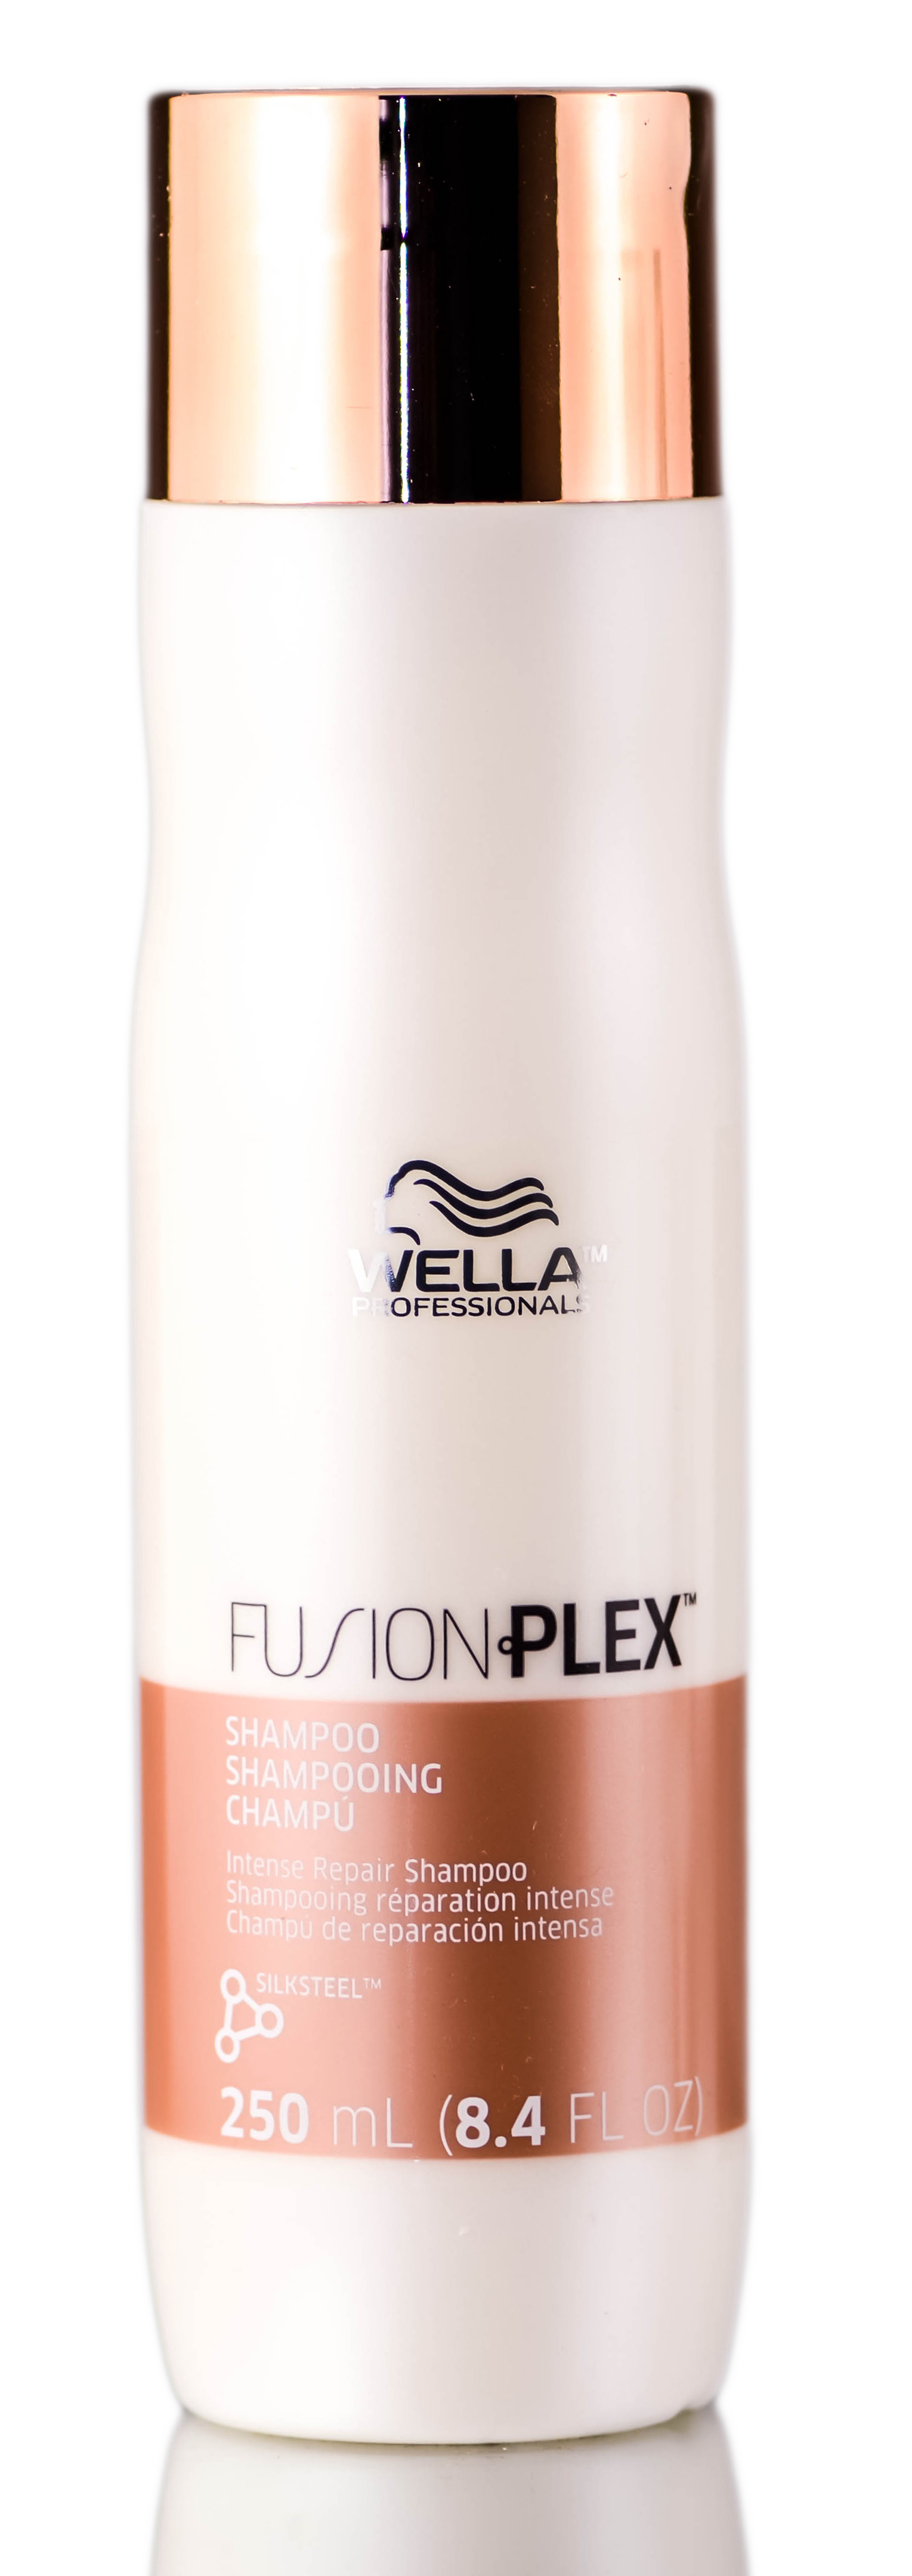 Wella FusionPlex Intense Repair Shampoo 070018100627